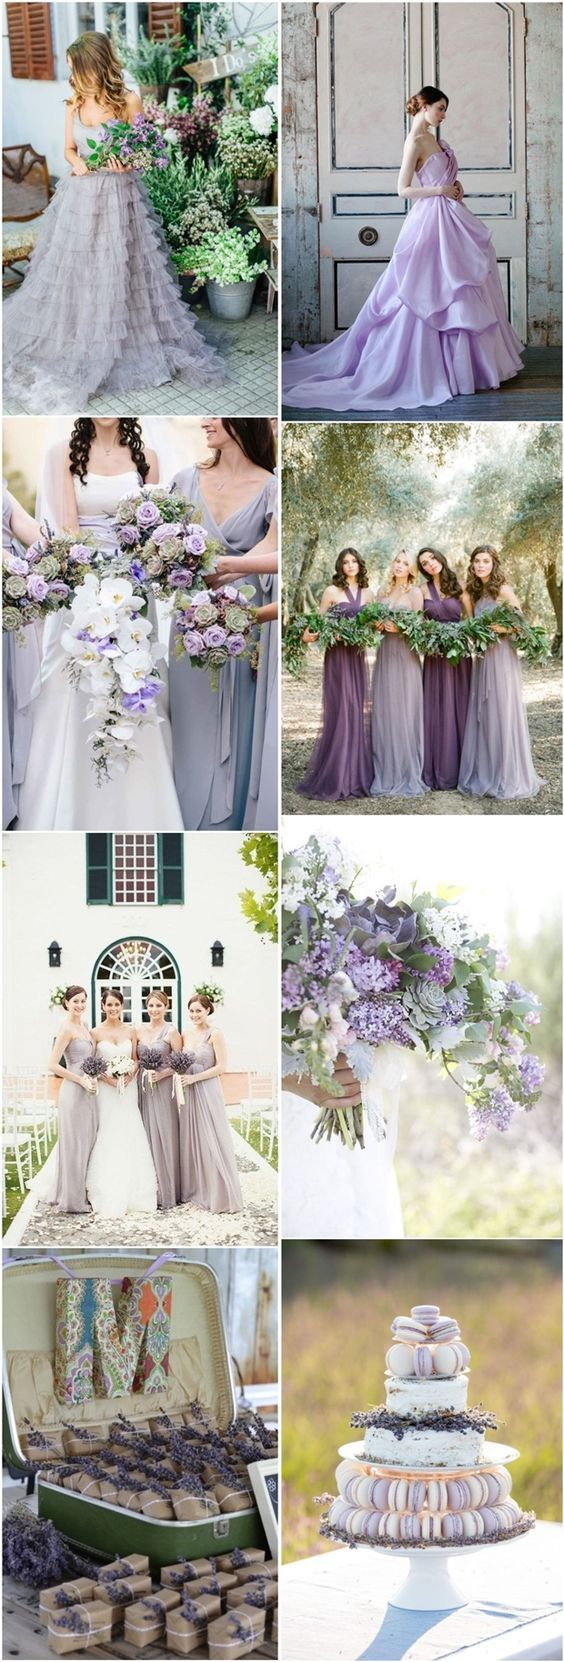 lavender wedding color ideas- purple wedding ideas and themes - Deer Pearl Flowers